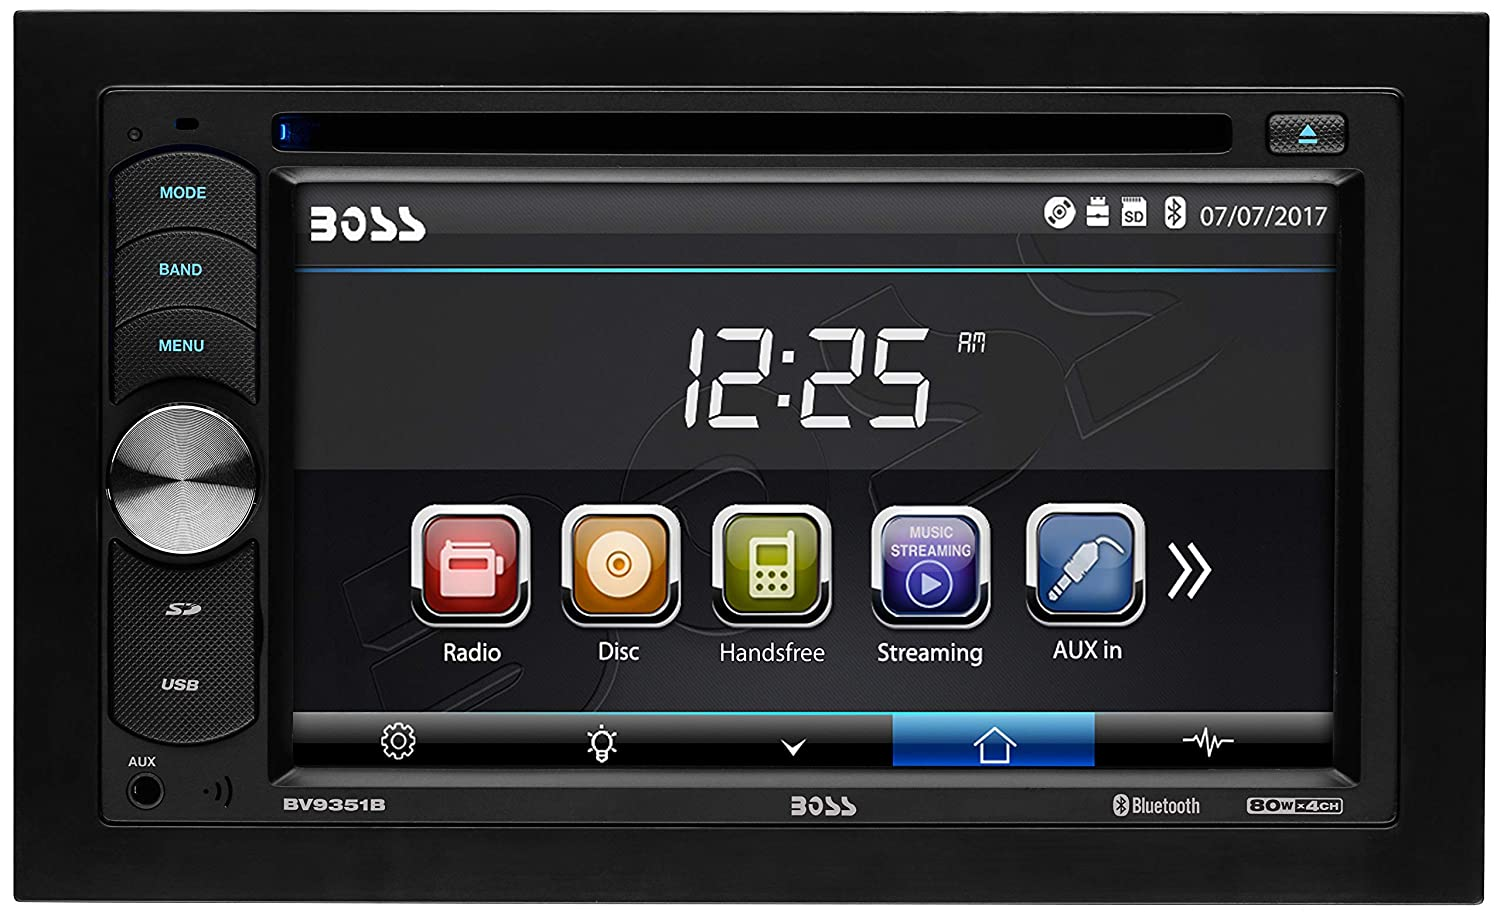 BOSS Audio BV9351B Double Din, Touchscreen, Bluetooth, DVD/CD/MP3/USB/SD AM/FM Car Stereo, 6.2 Inch Digital LCD Monitor, Wireless Remote